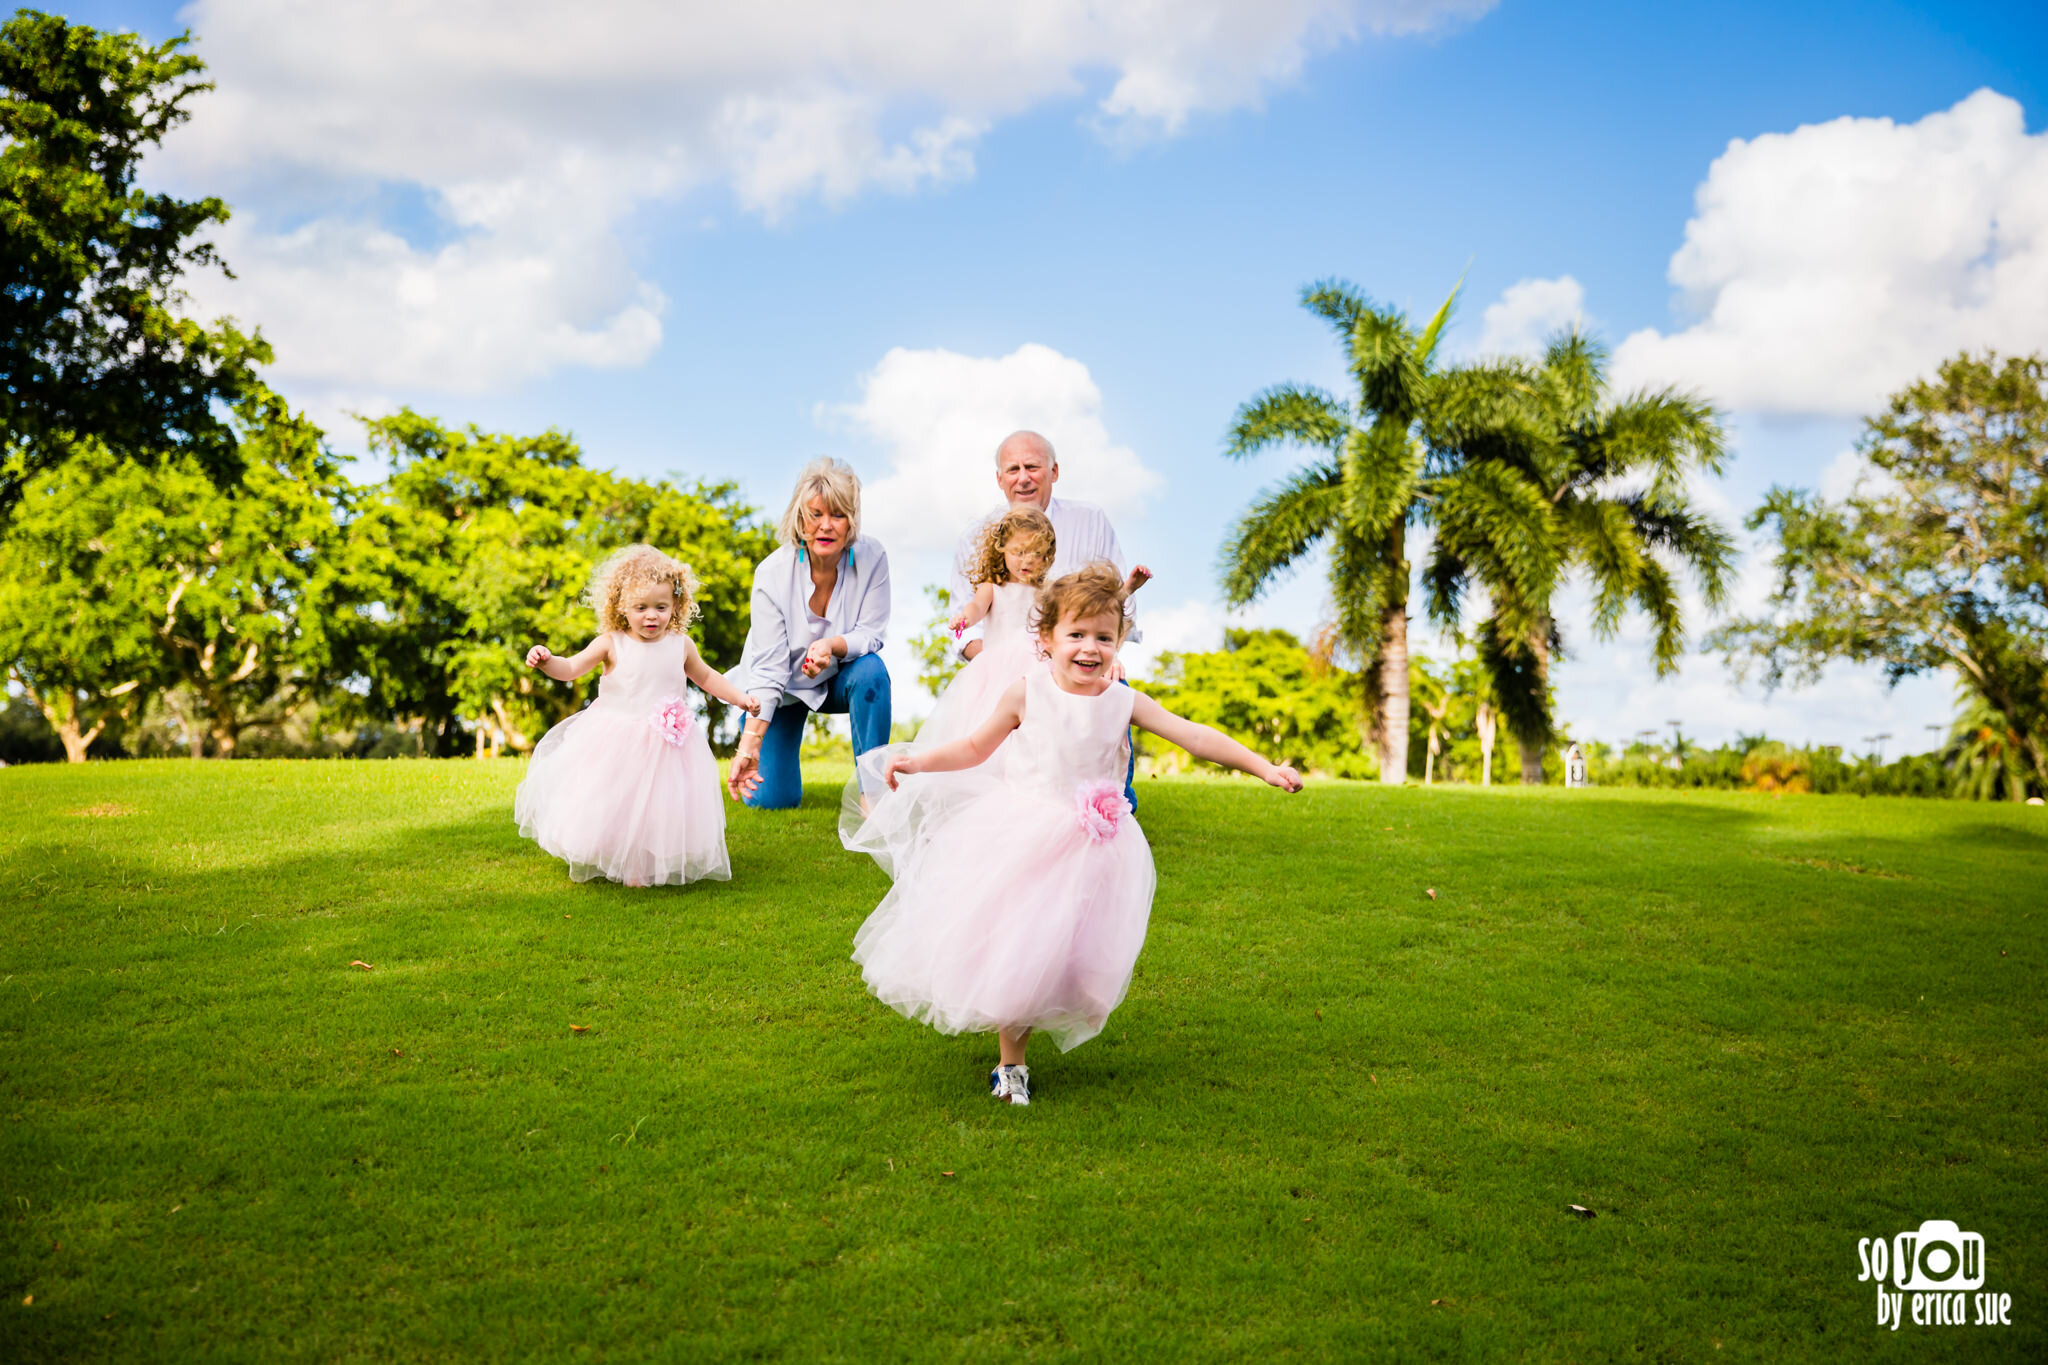 so-you-by-erica-sue-south-florida-extended-family-lifestyle-photo-session-2217.JPG